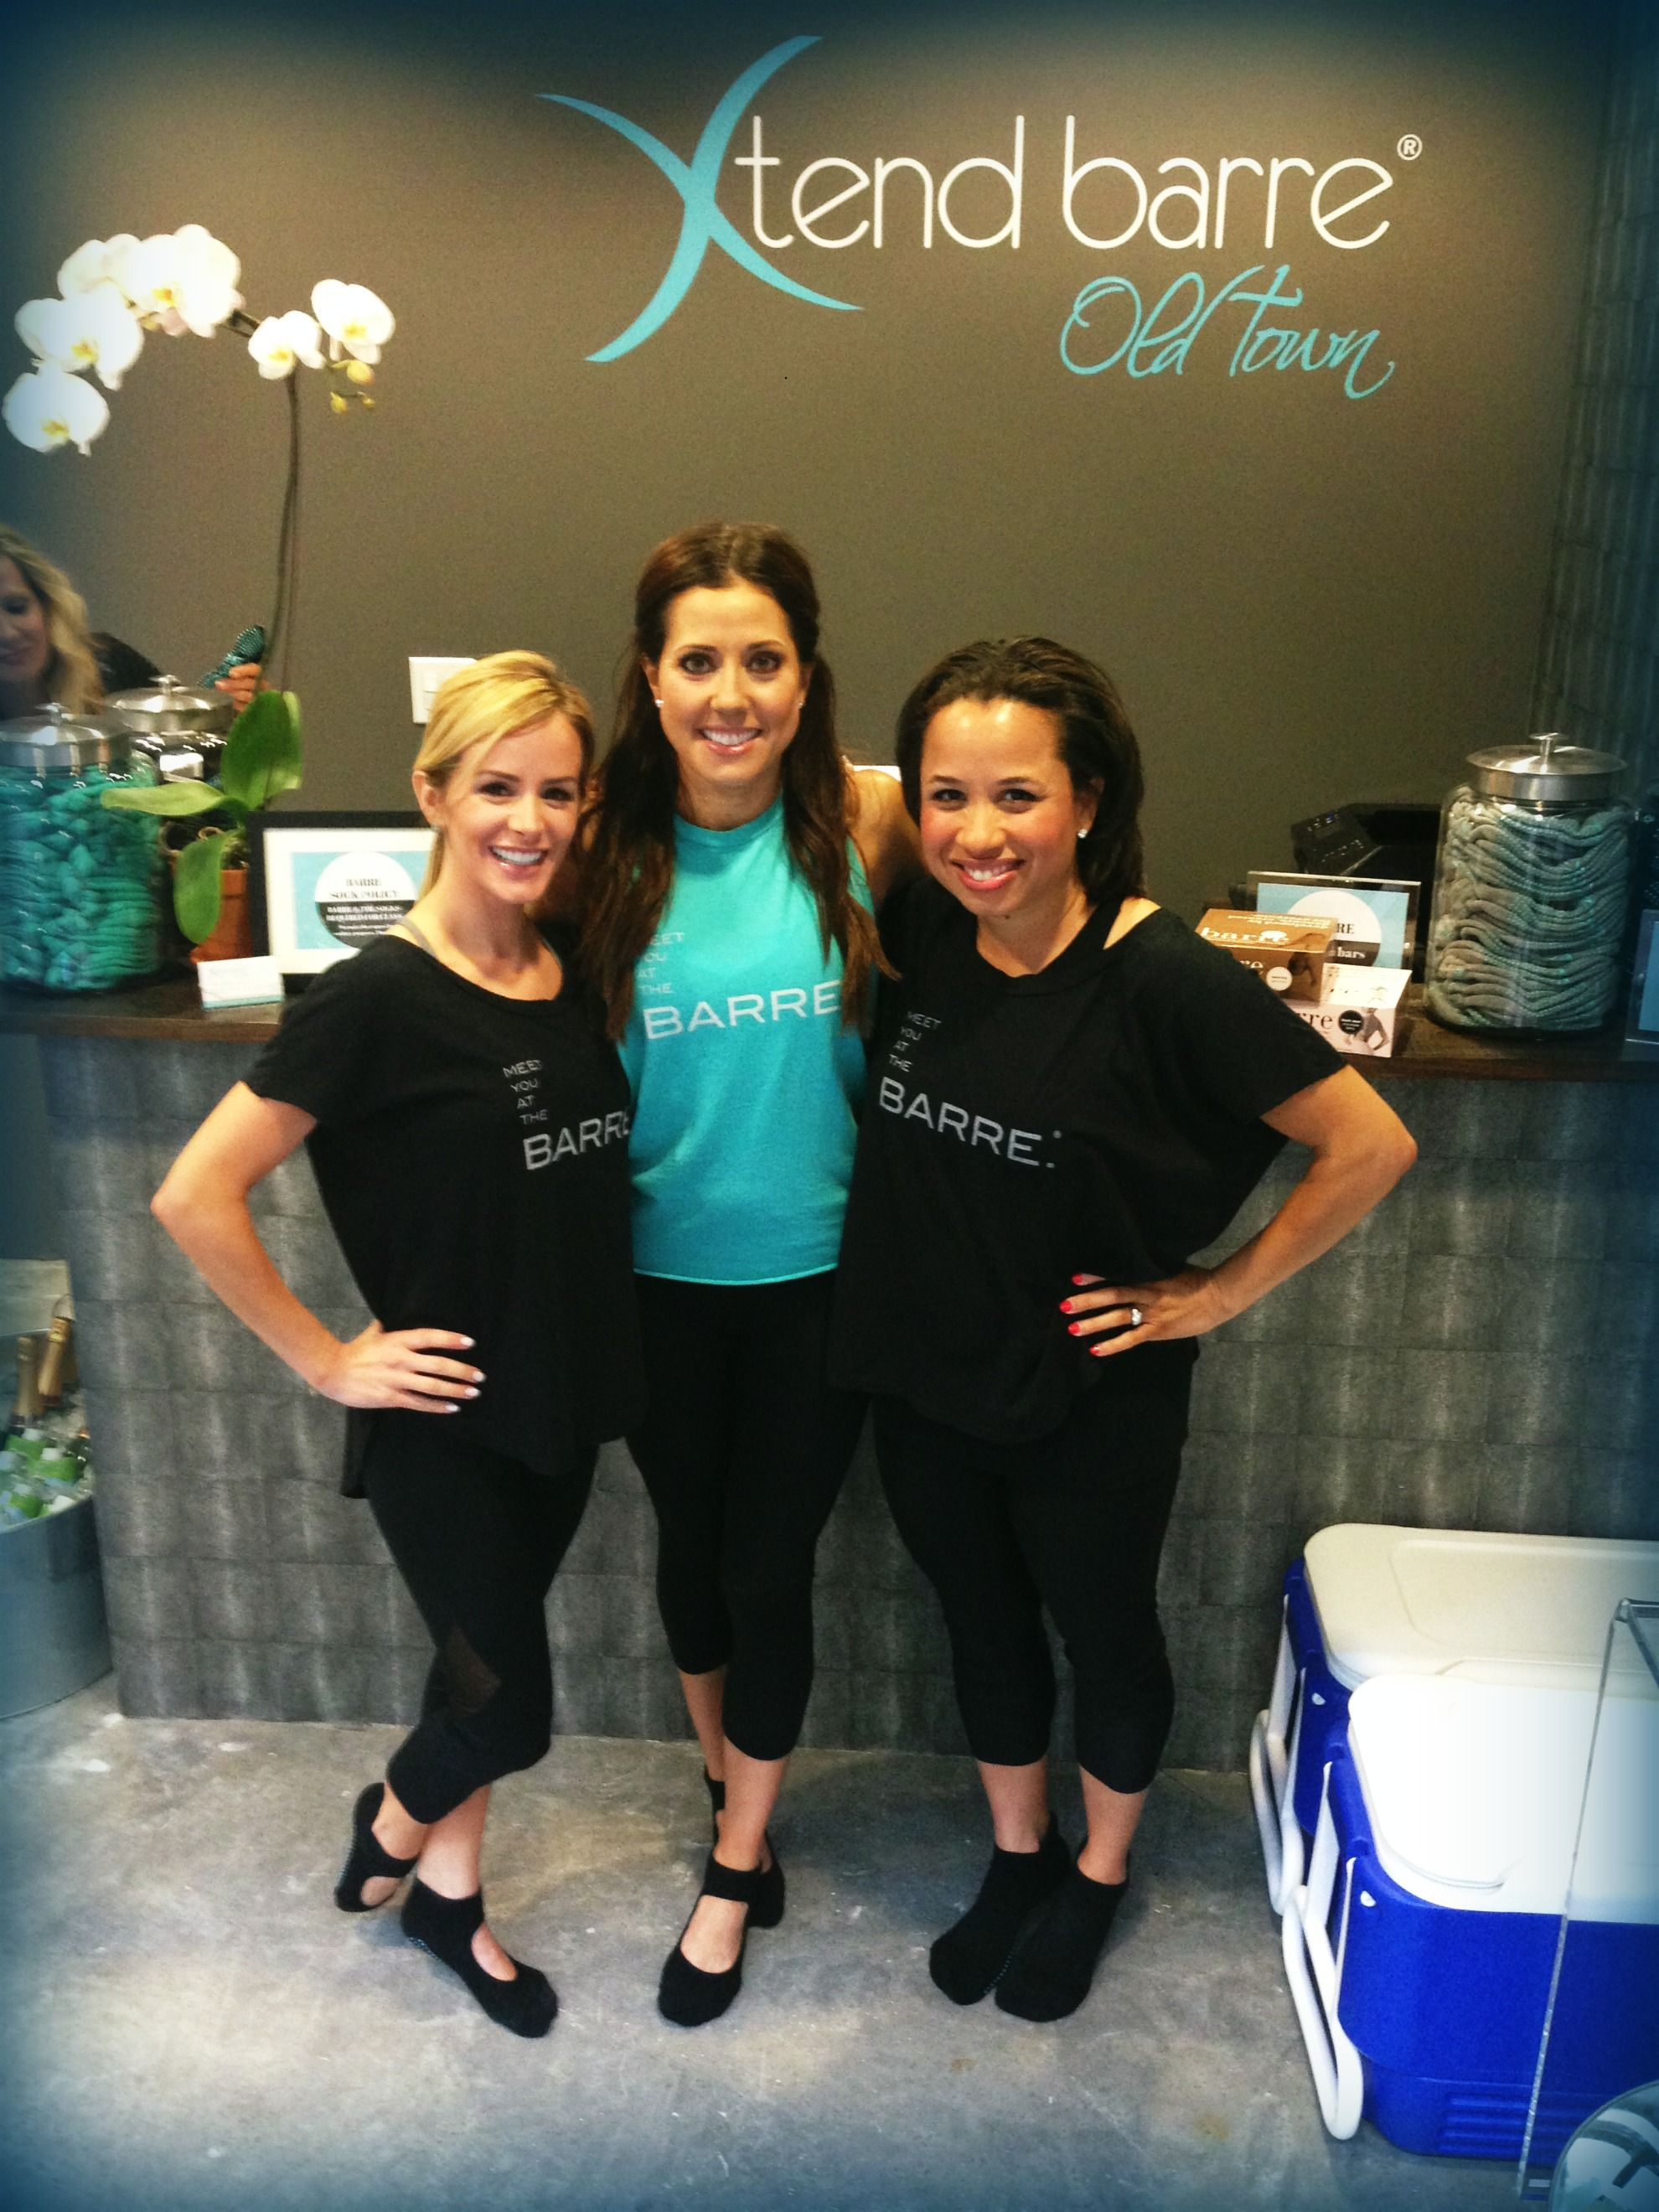 xtend barre old town